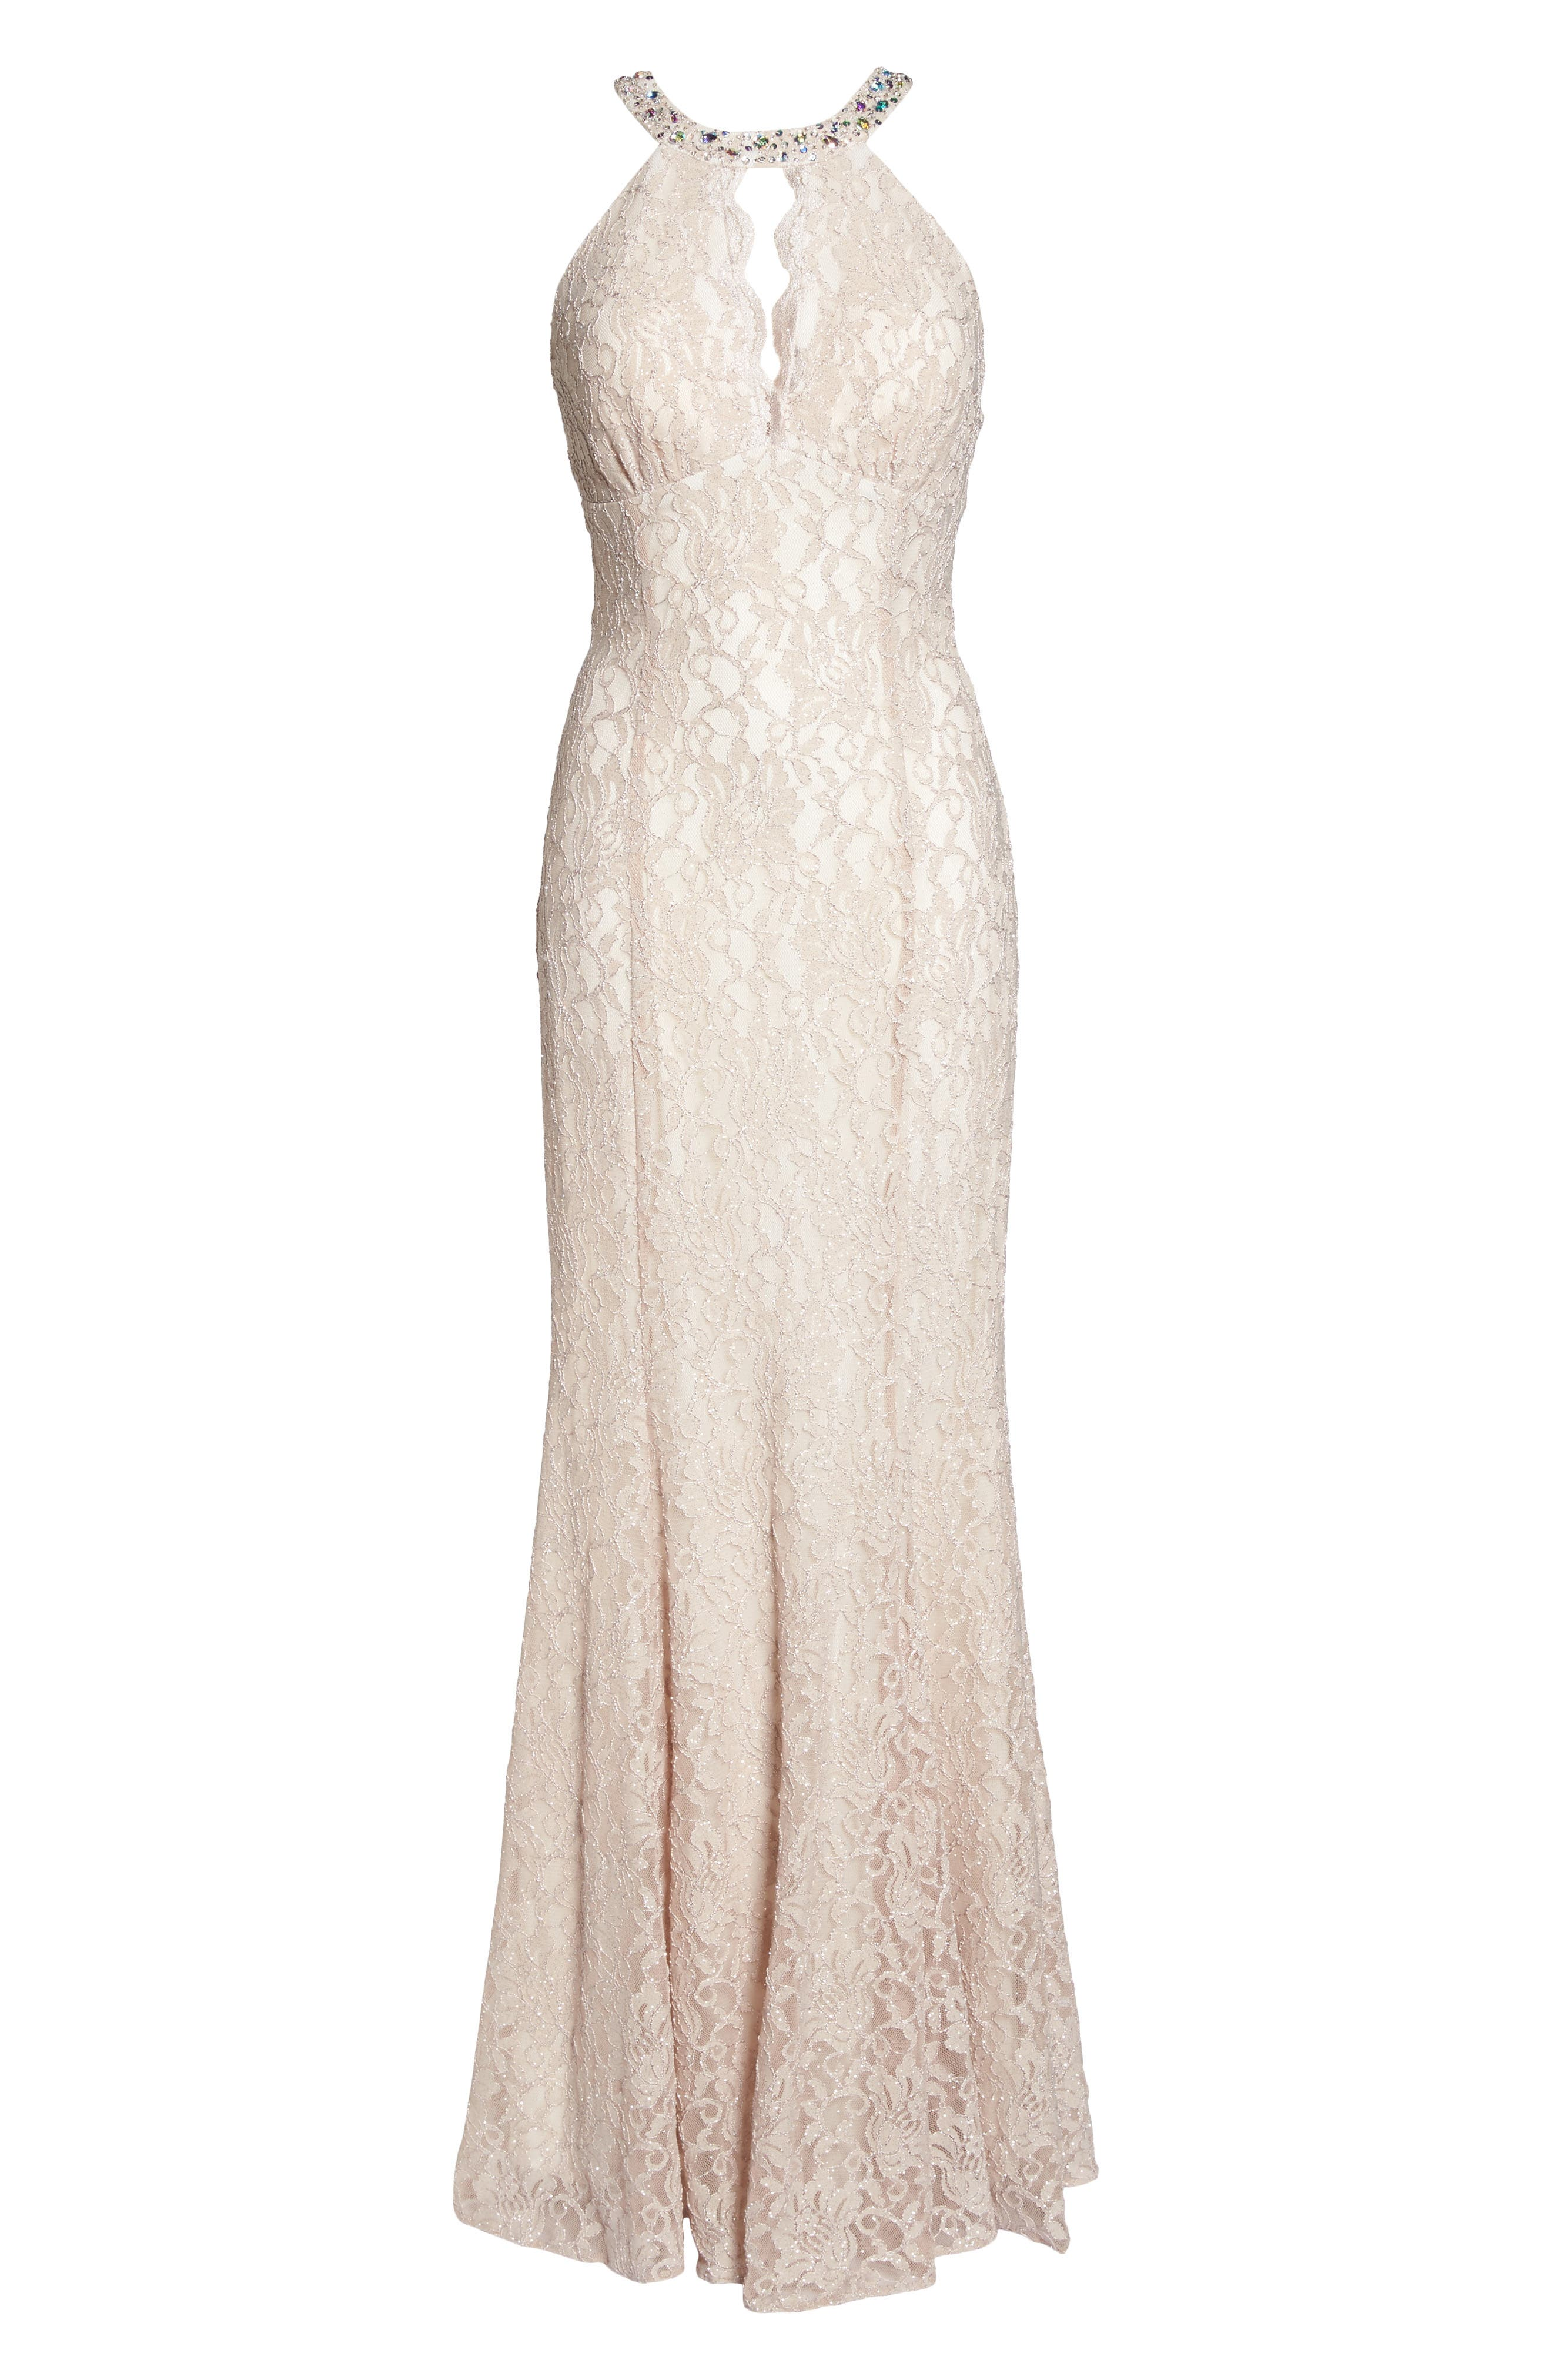 Embellished Lace Gown,                             Alternate thumbnail 6, color,                             Champagne / Ivory